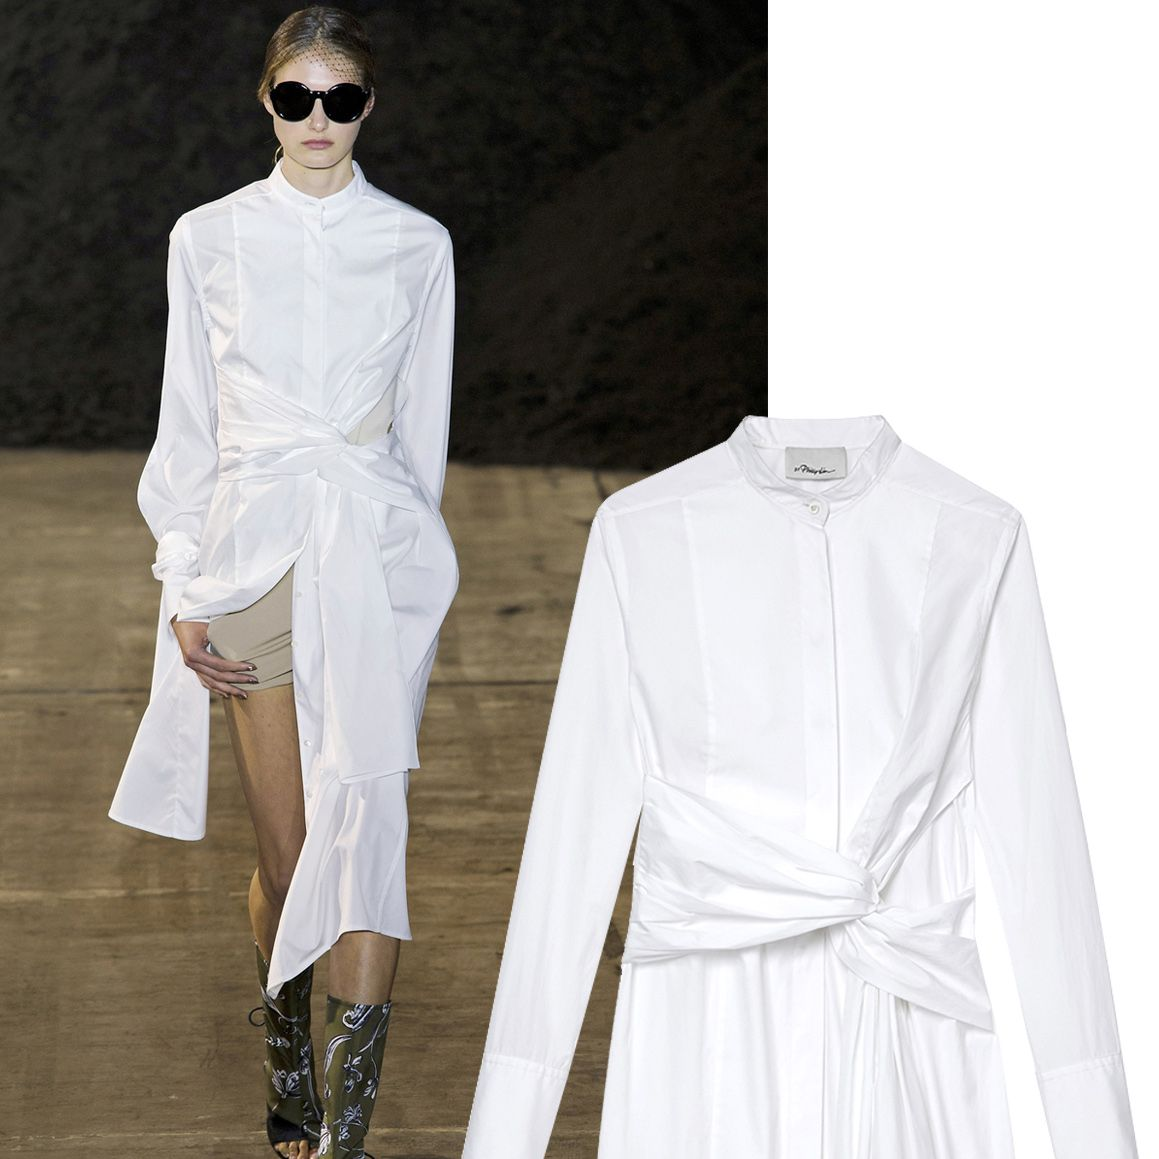 """<p>""""There is nothing sexier than a white crisp shirt. We pushed the envelope on the classic body by elongating the form and adding unexpected details. Playing with proportion and personal styling, you can wear it as a shirt or tunic, over shorts or jeans.""""—Phillip Lim</p><p>        <em><strong>3.1 Phillip Lim</strong> dress, $575, <strong><a href=""""https://shop.harpersbazaar.com/designers/0-9/31-phillip-lim/twist-detail-cutout-cotton-dress-8404.html"""" target=""""_blank"""">shopBAZAAR.com</a></strong></em><span class=""""redactor-invisible-space""""><em>.</em><br></span></p>"""